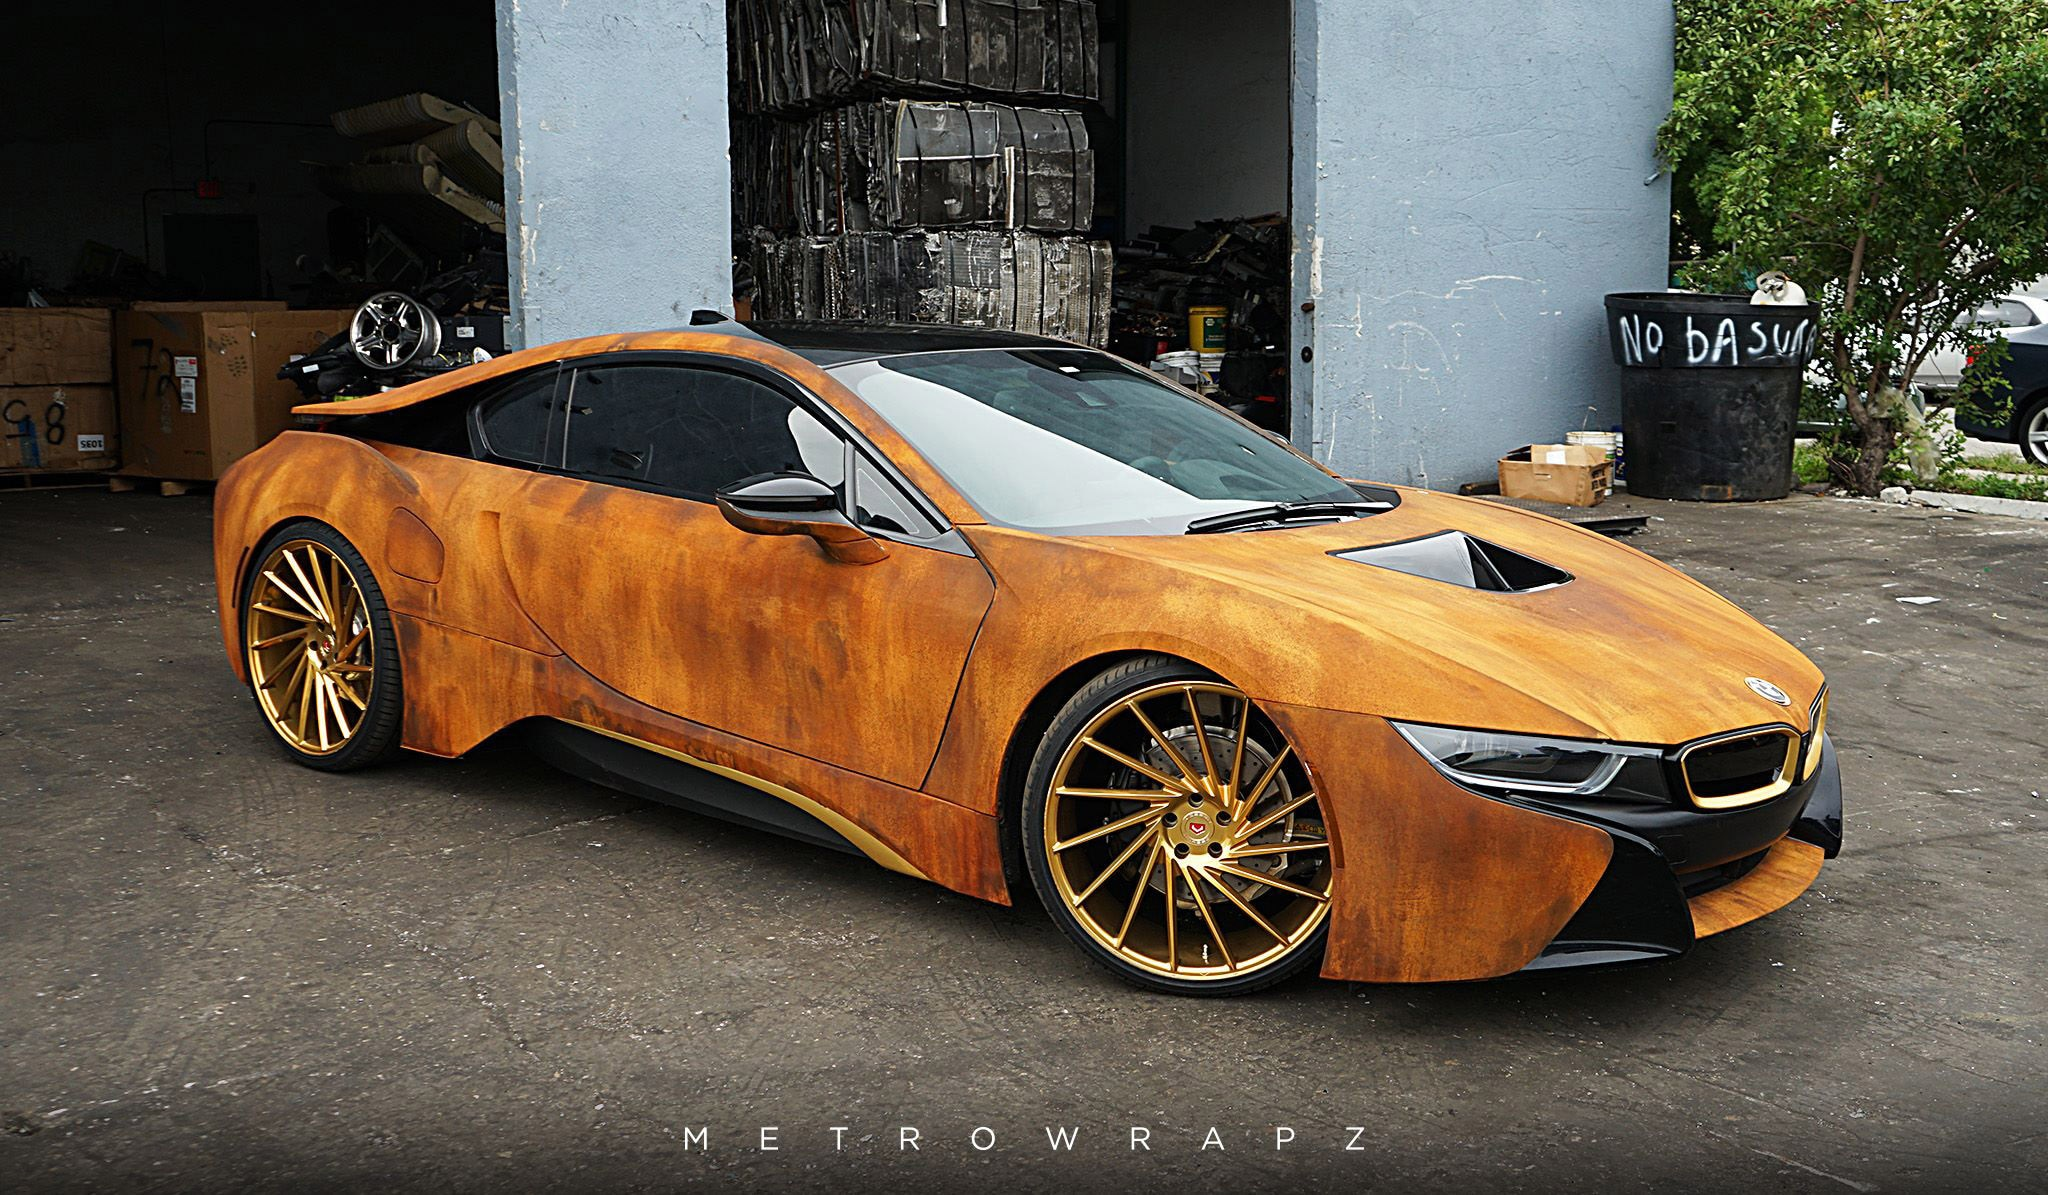 BMW I8 Mpg >> Rust-Wrapped BMW i8 Looks Like the Real Deal | Automobile ...